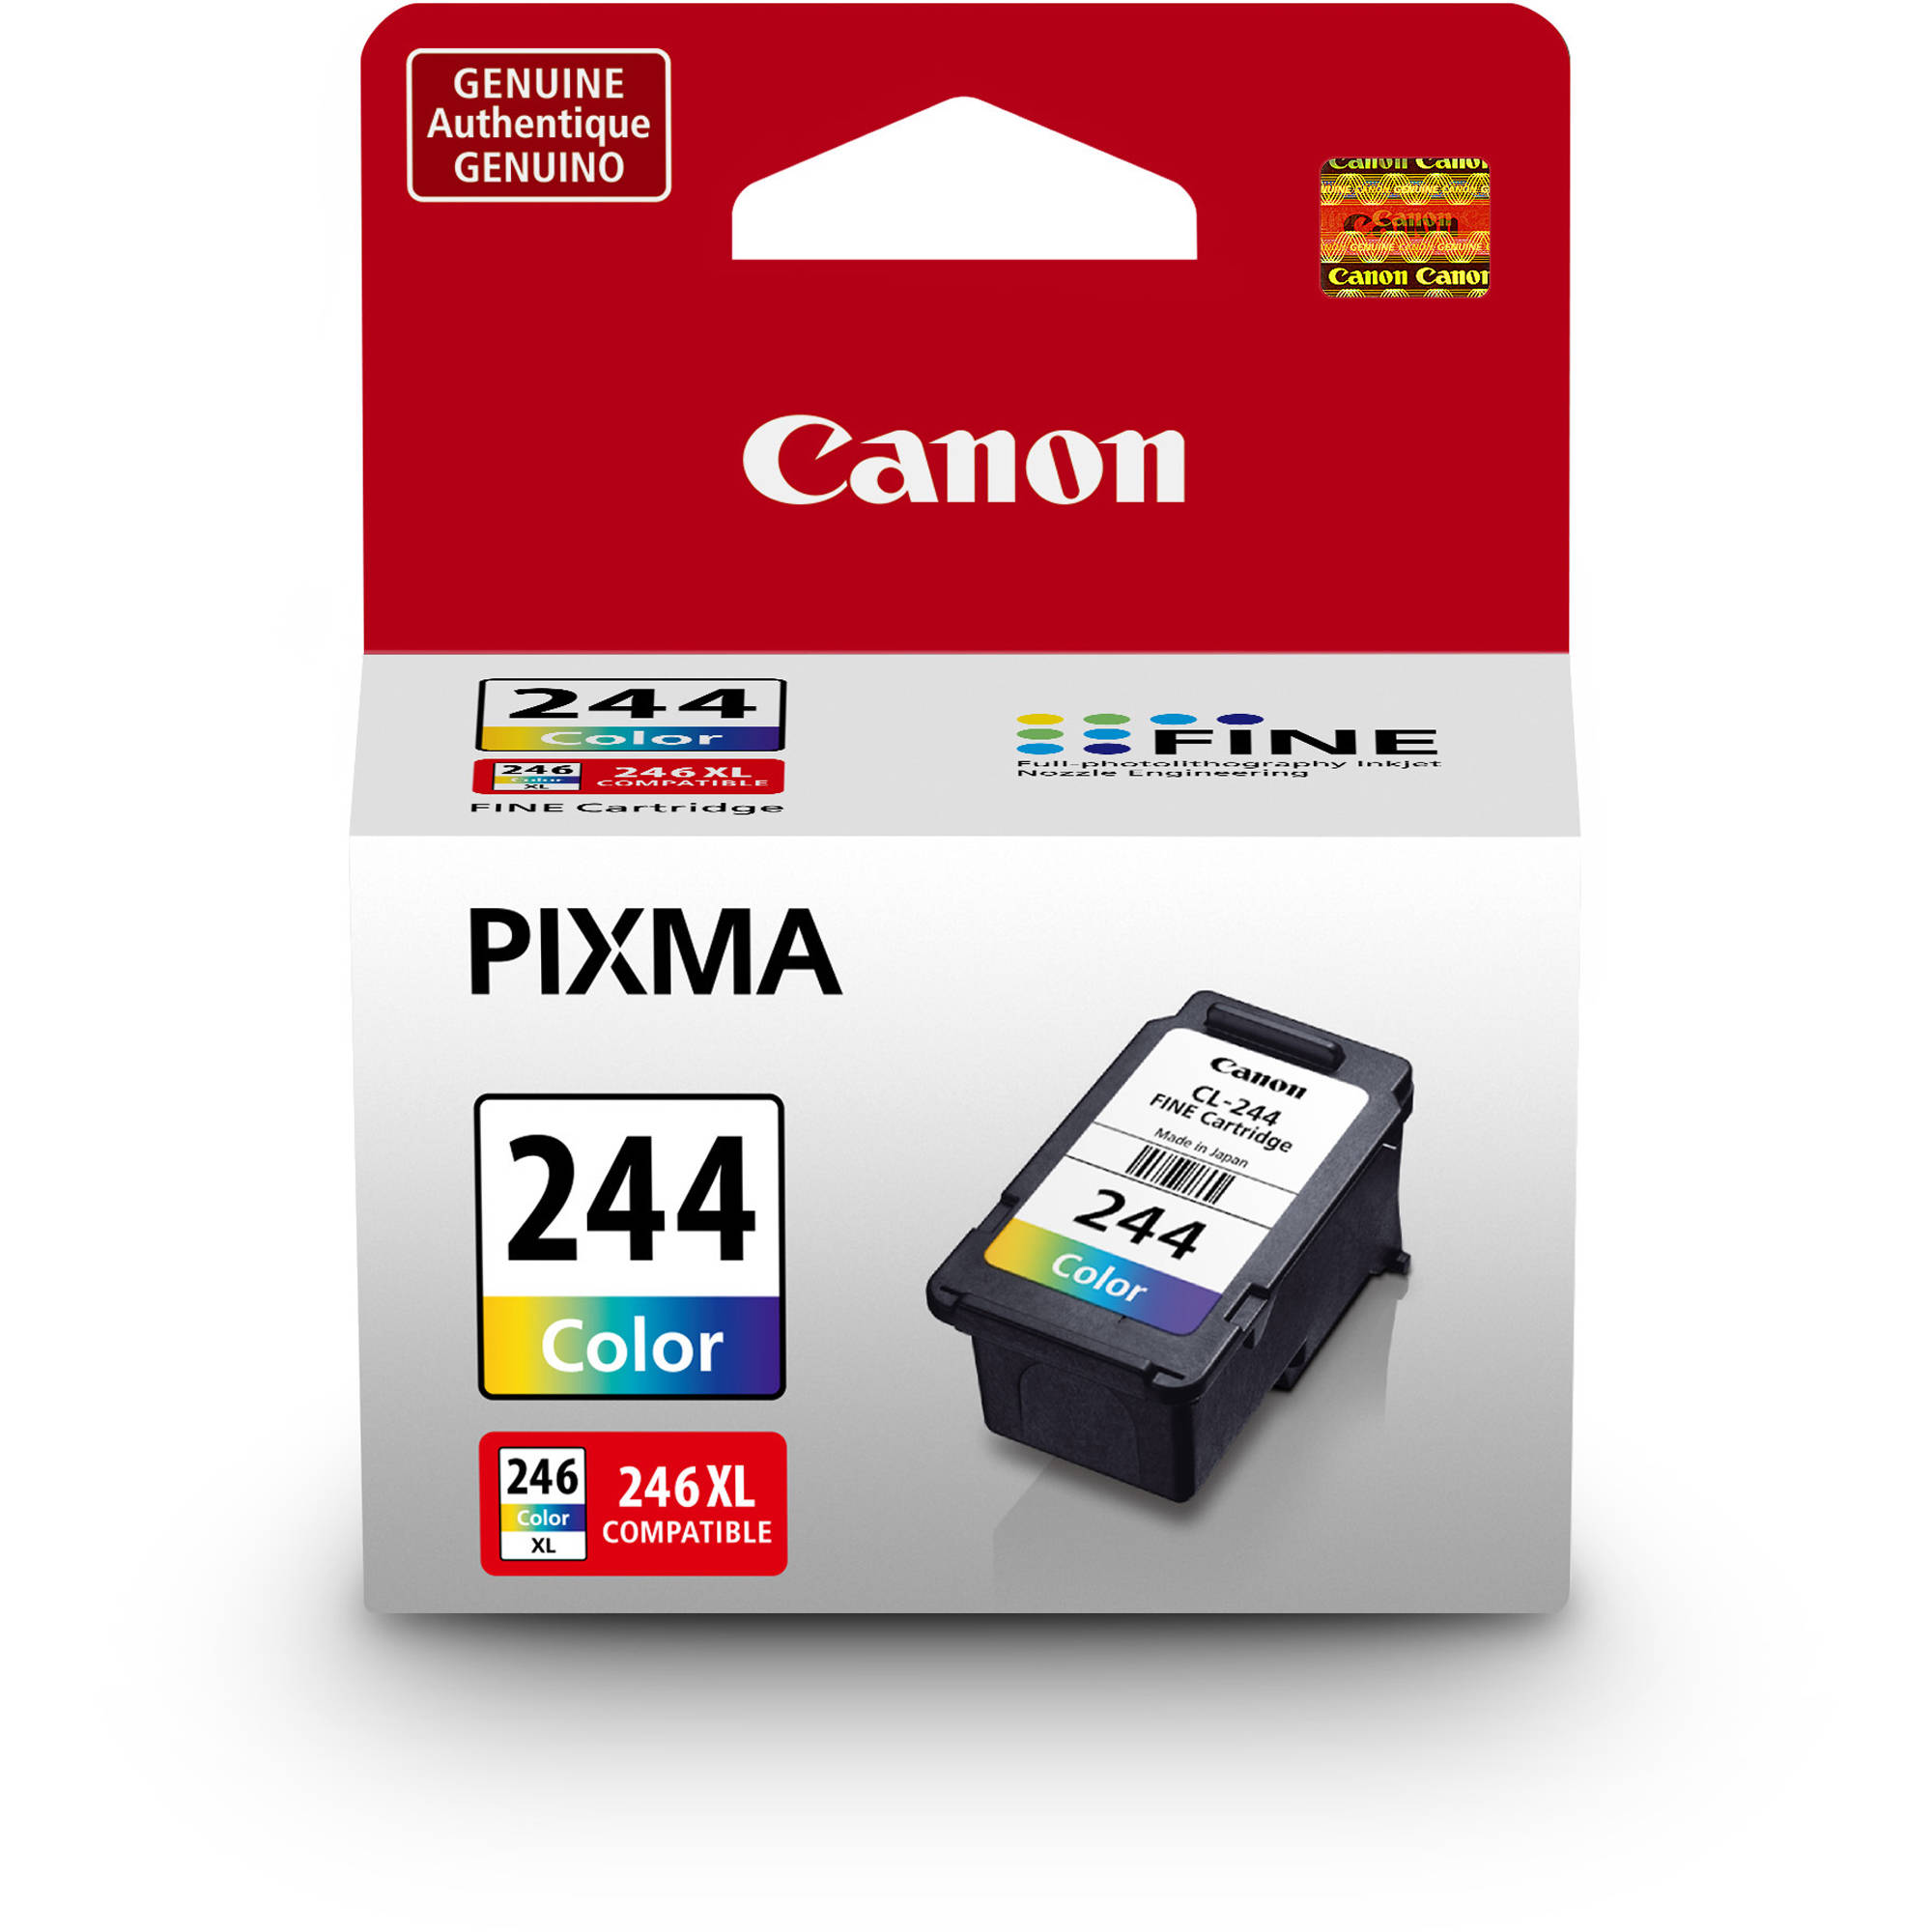 Canon CL 244 Color Ink Cartridge